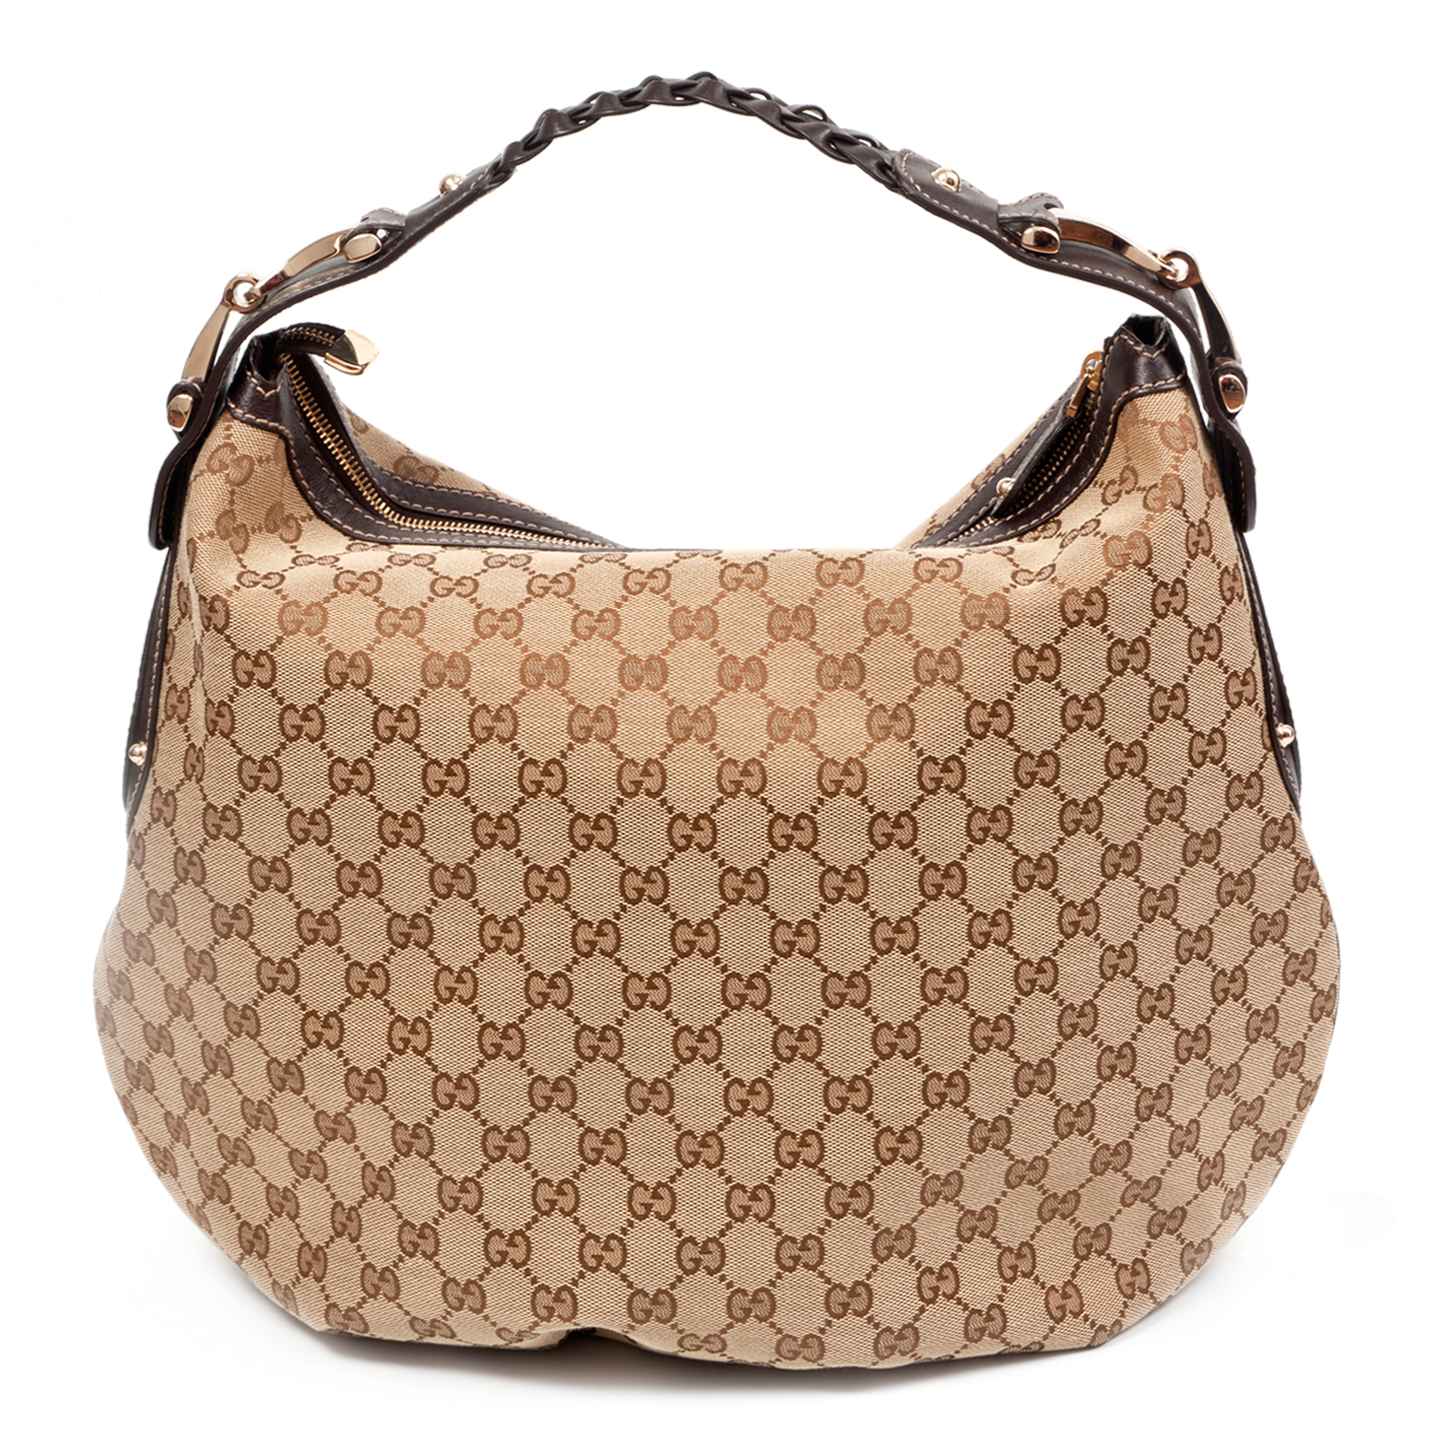 Gucci Pelham Medium Hobo with horse-bit detail